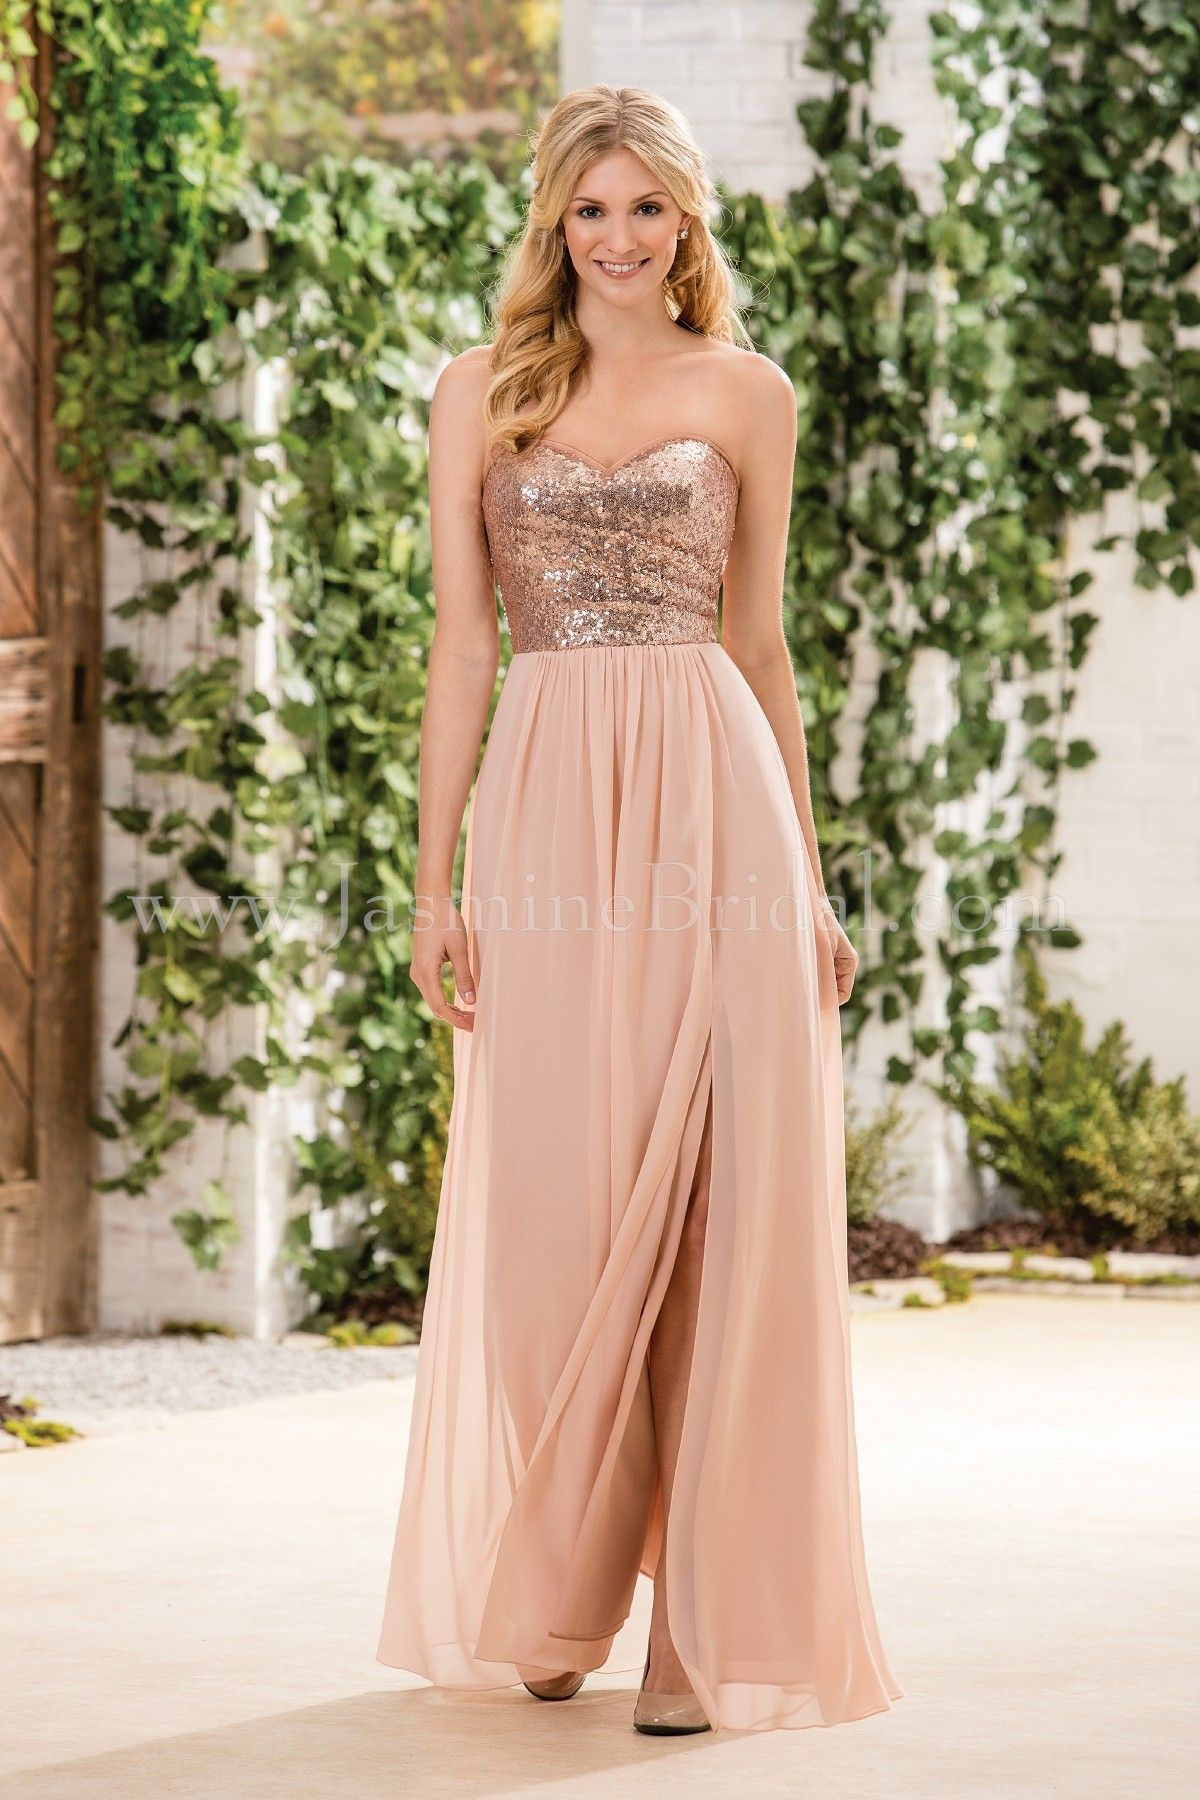 Jasmine bridal bridesmaid dress b2 style b183064 in rose for Gold bridesmaid dresses wedding